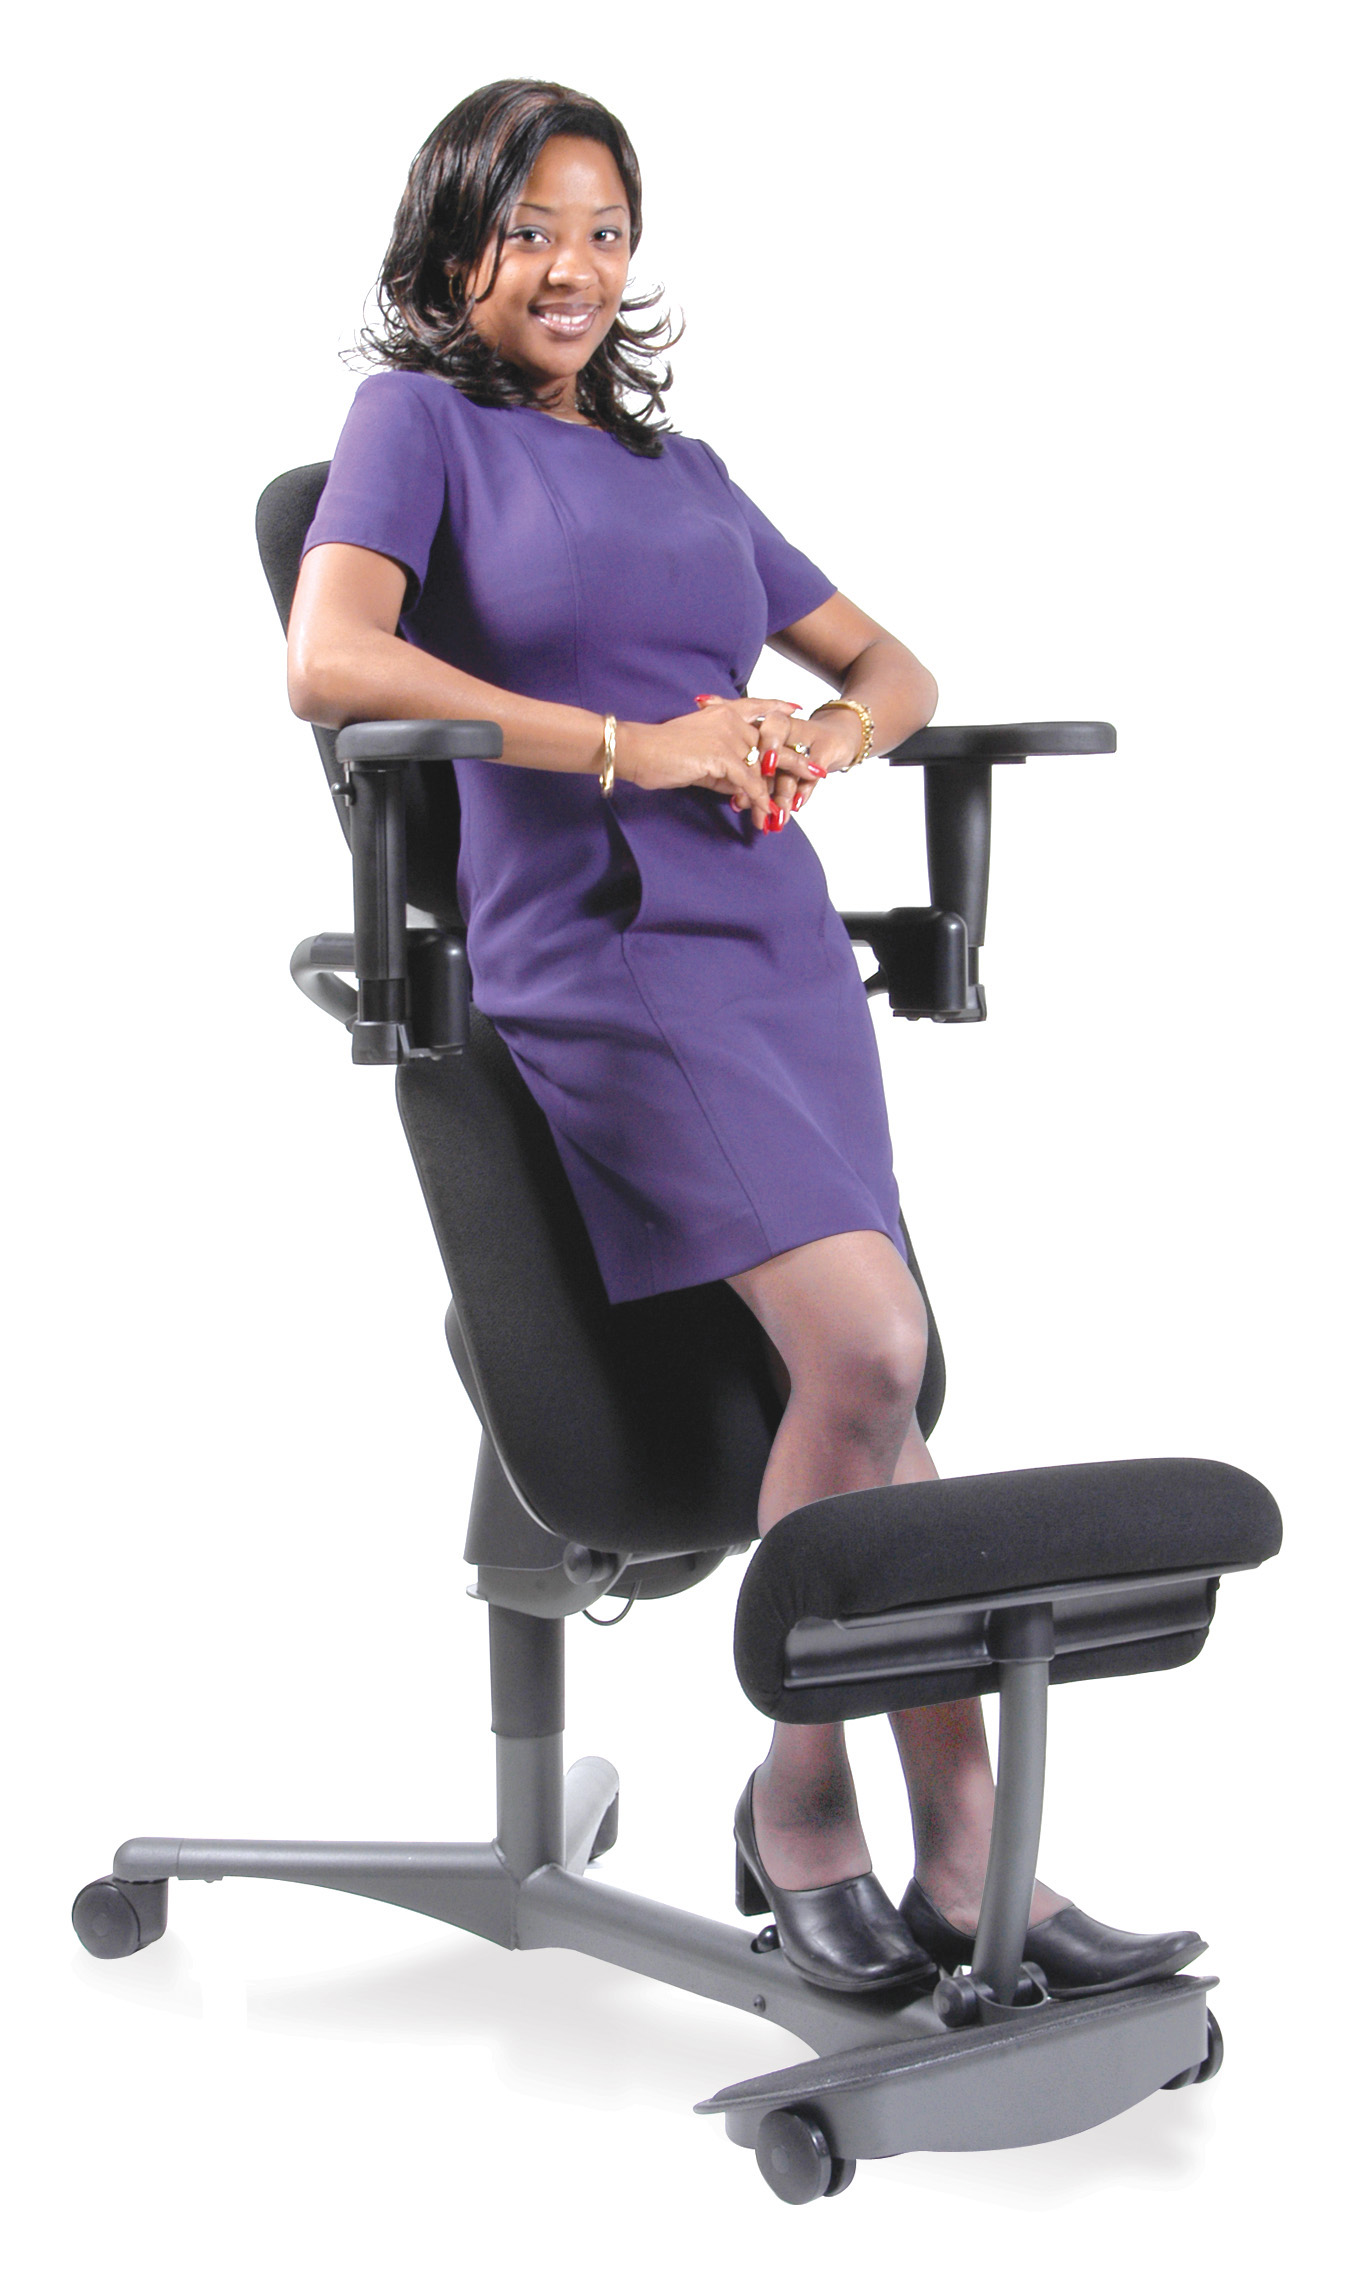 Standing Desk Chairs Healthpostures Announces The Release Of Upgraded Ergonomic